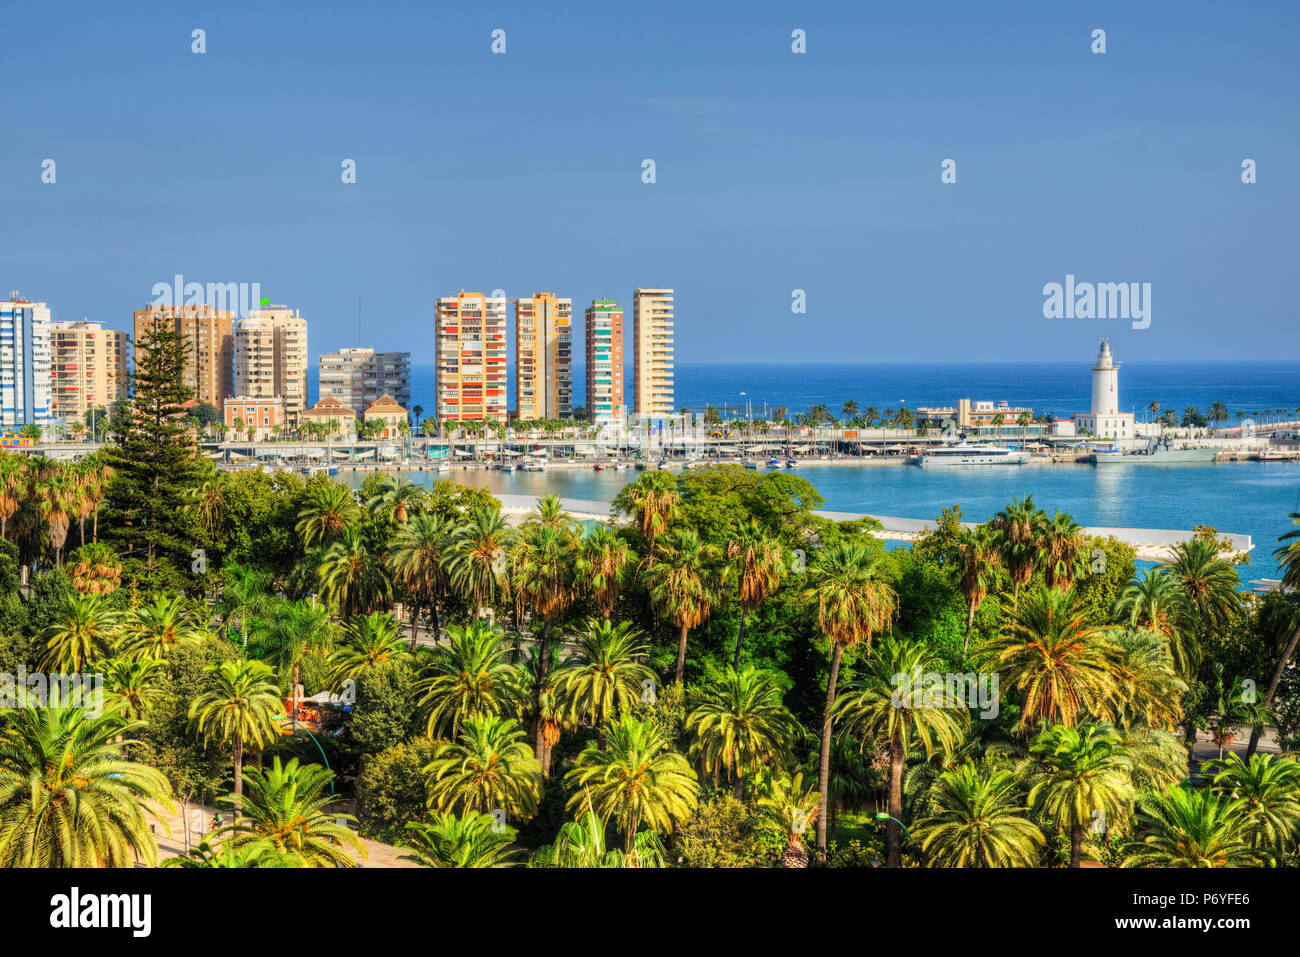 View at harbour with lighthouse, Malaga, Costa del Sol, Andalusia, Spain - Stock Image